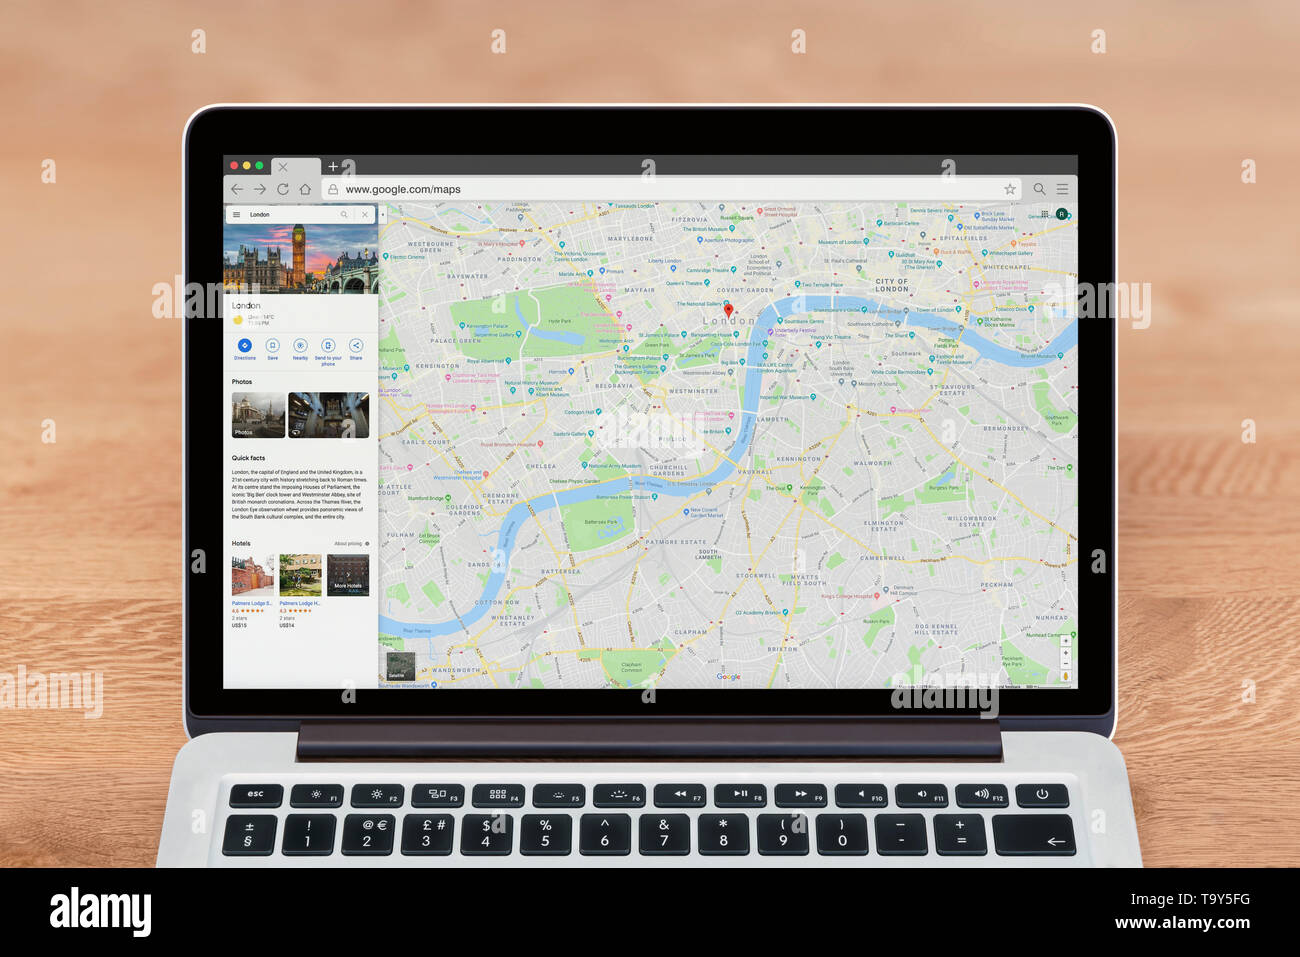 An Apple Macbook displays the Google Maps website (Editorial use only). - Stock Image